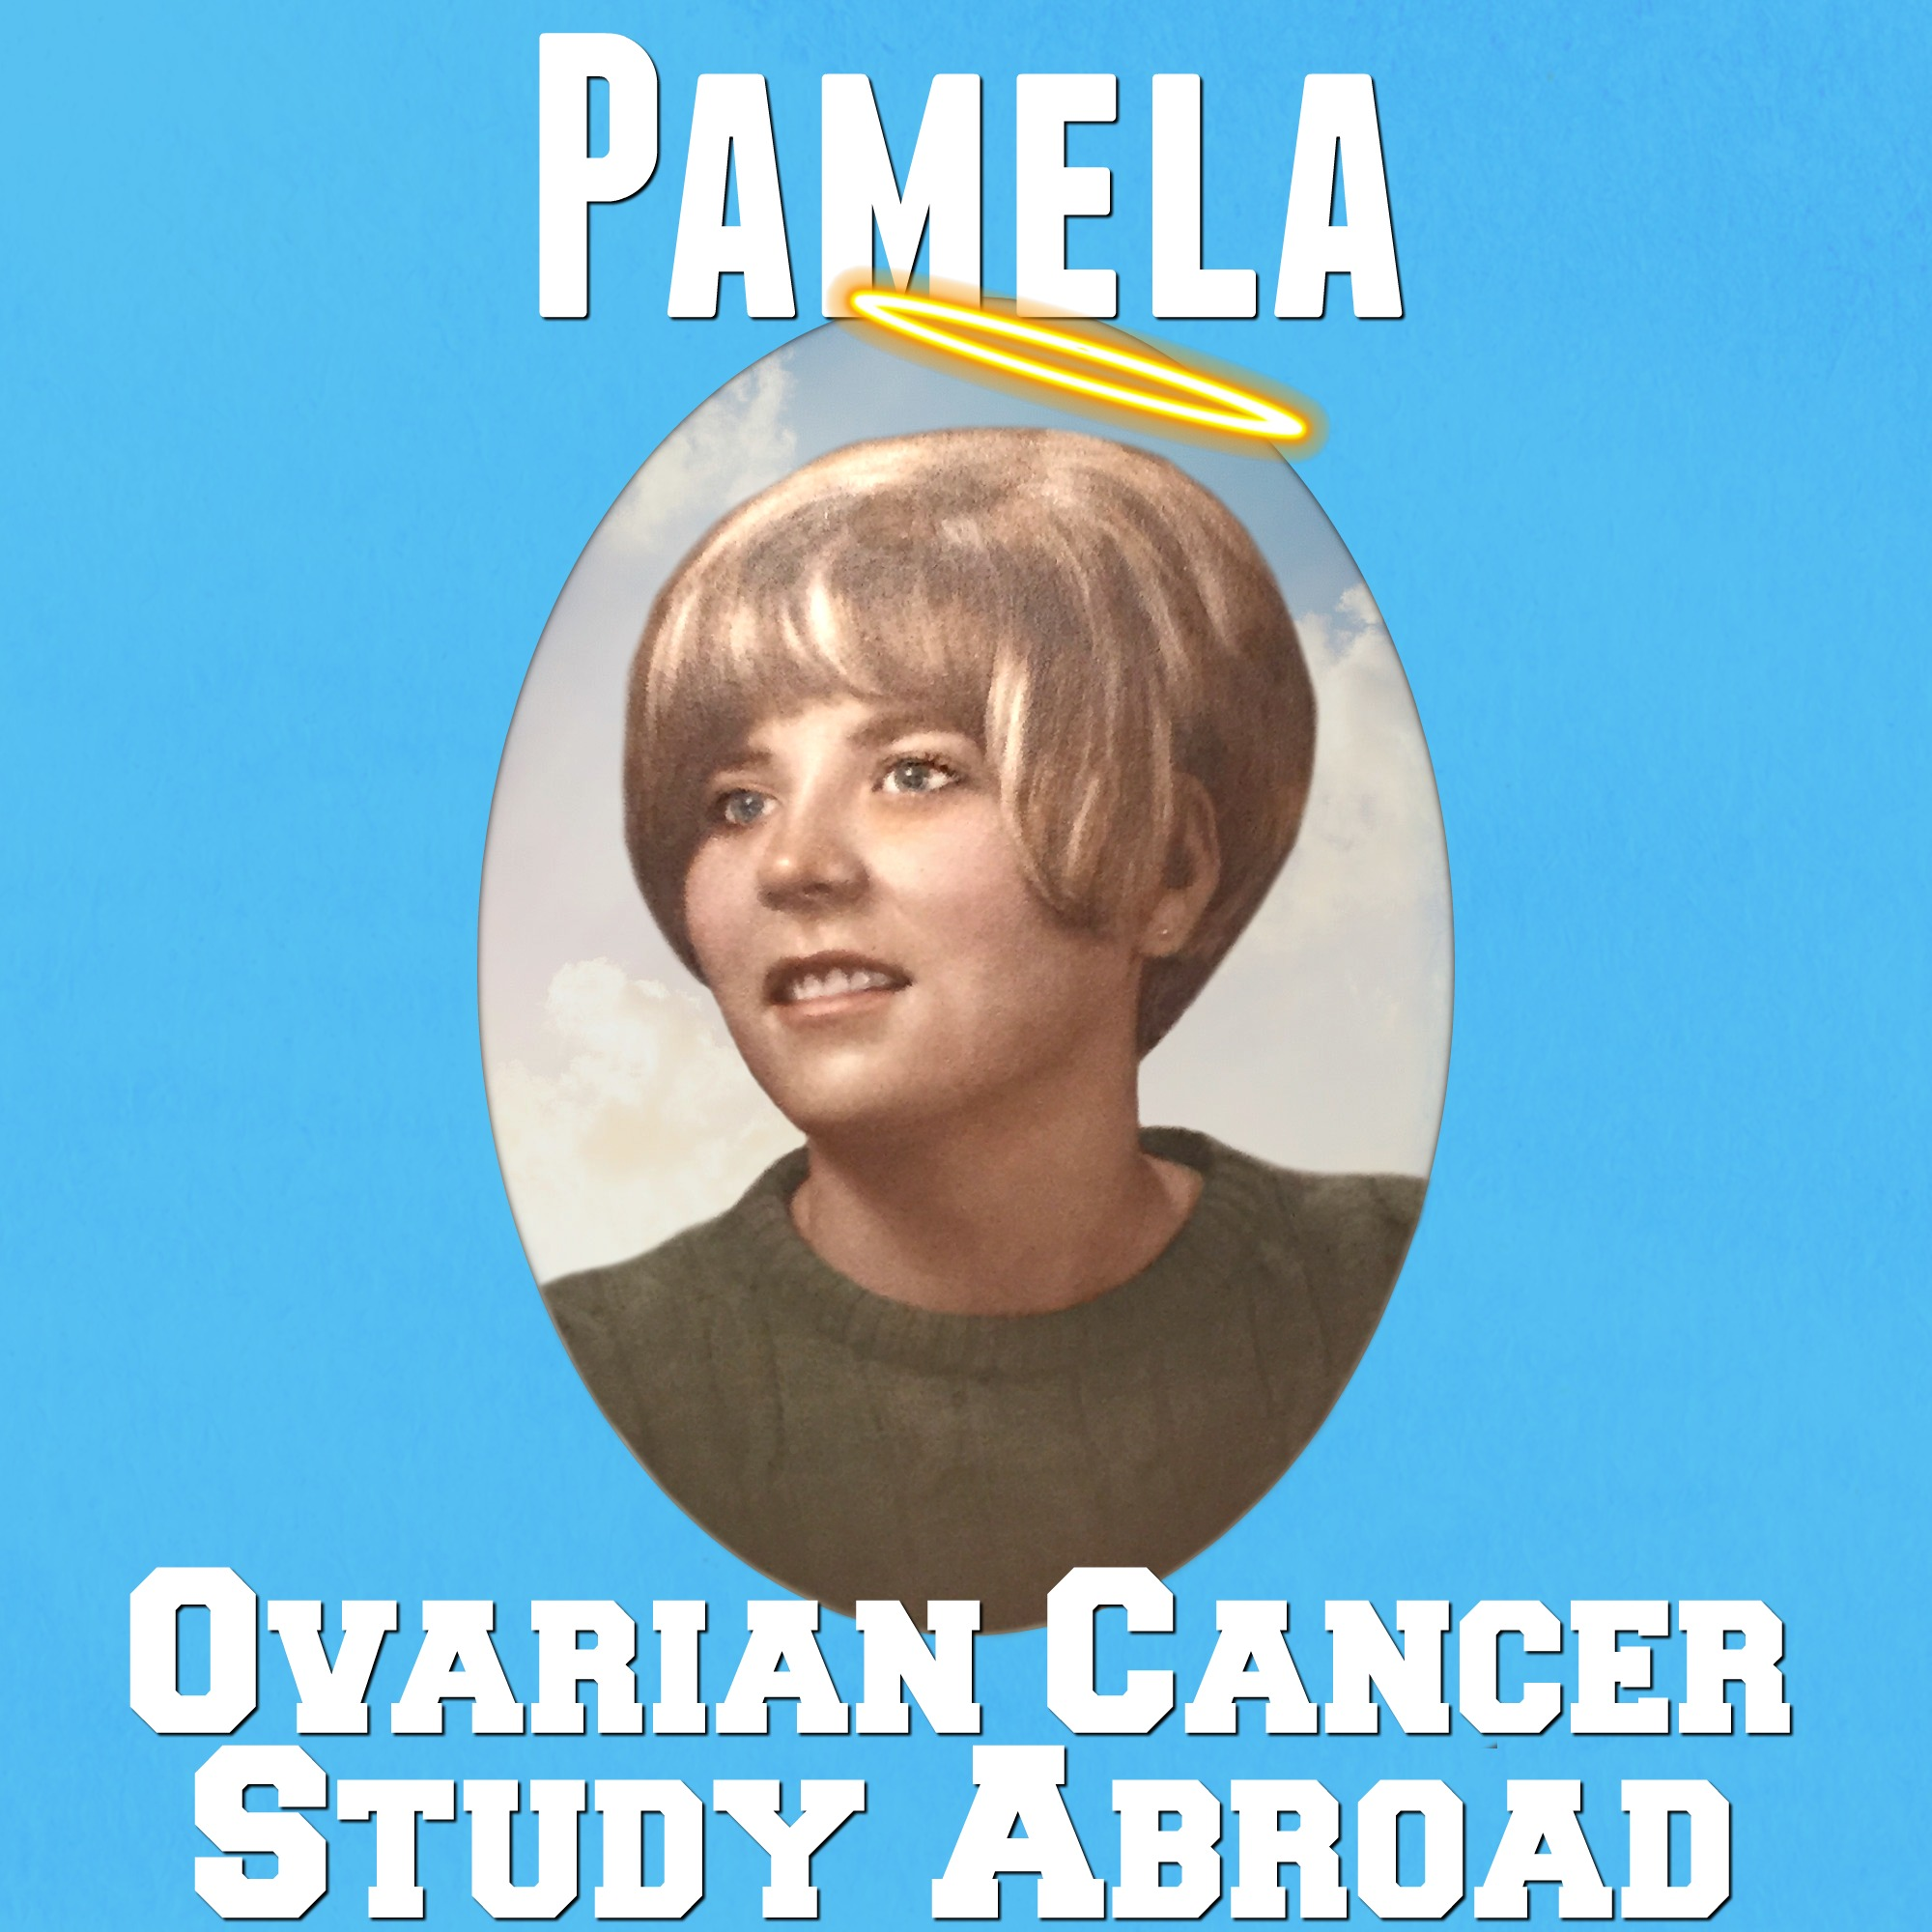 Aniela's Mom passed away from Ovarian Cancer after her 7 year battle.